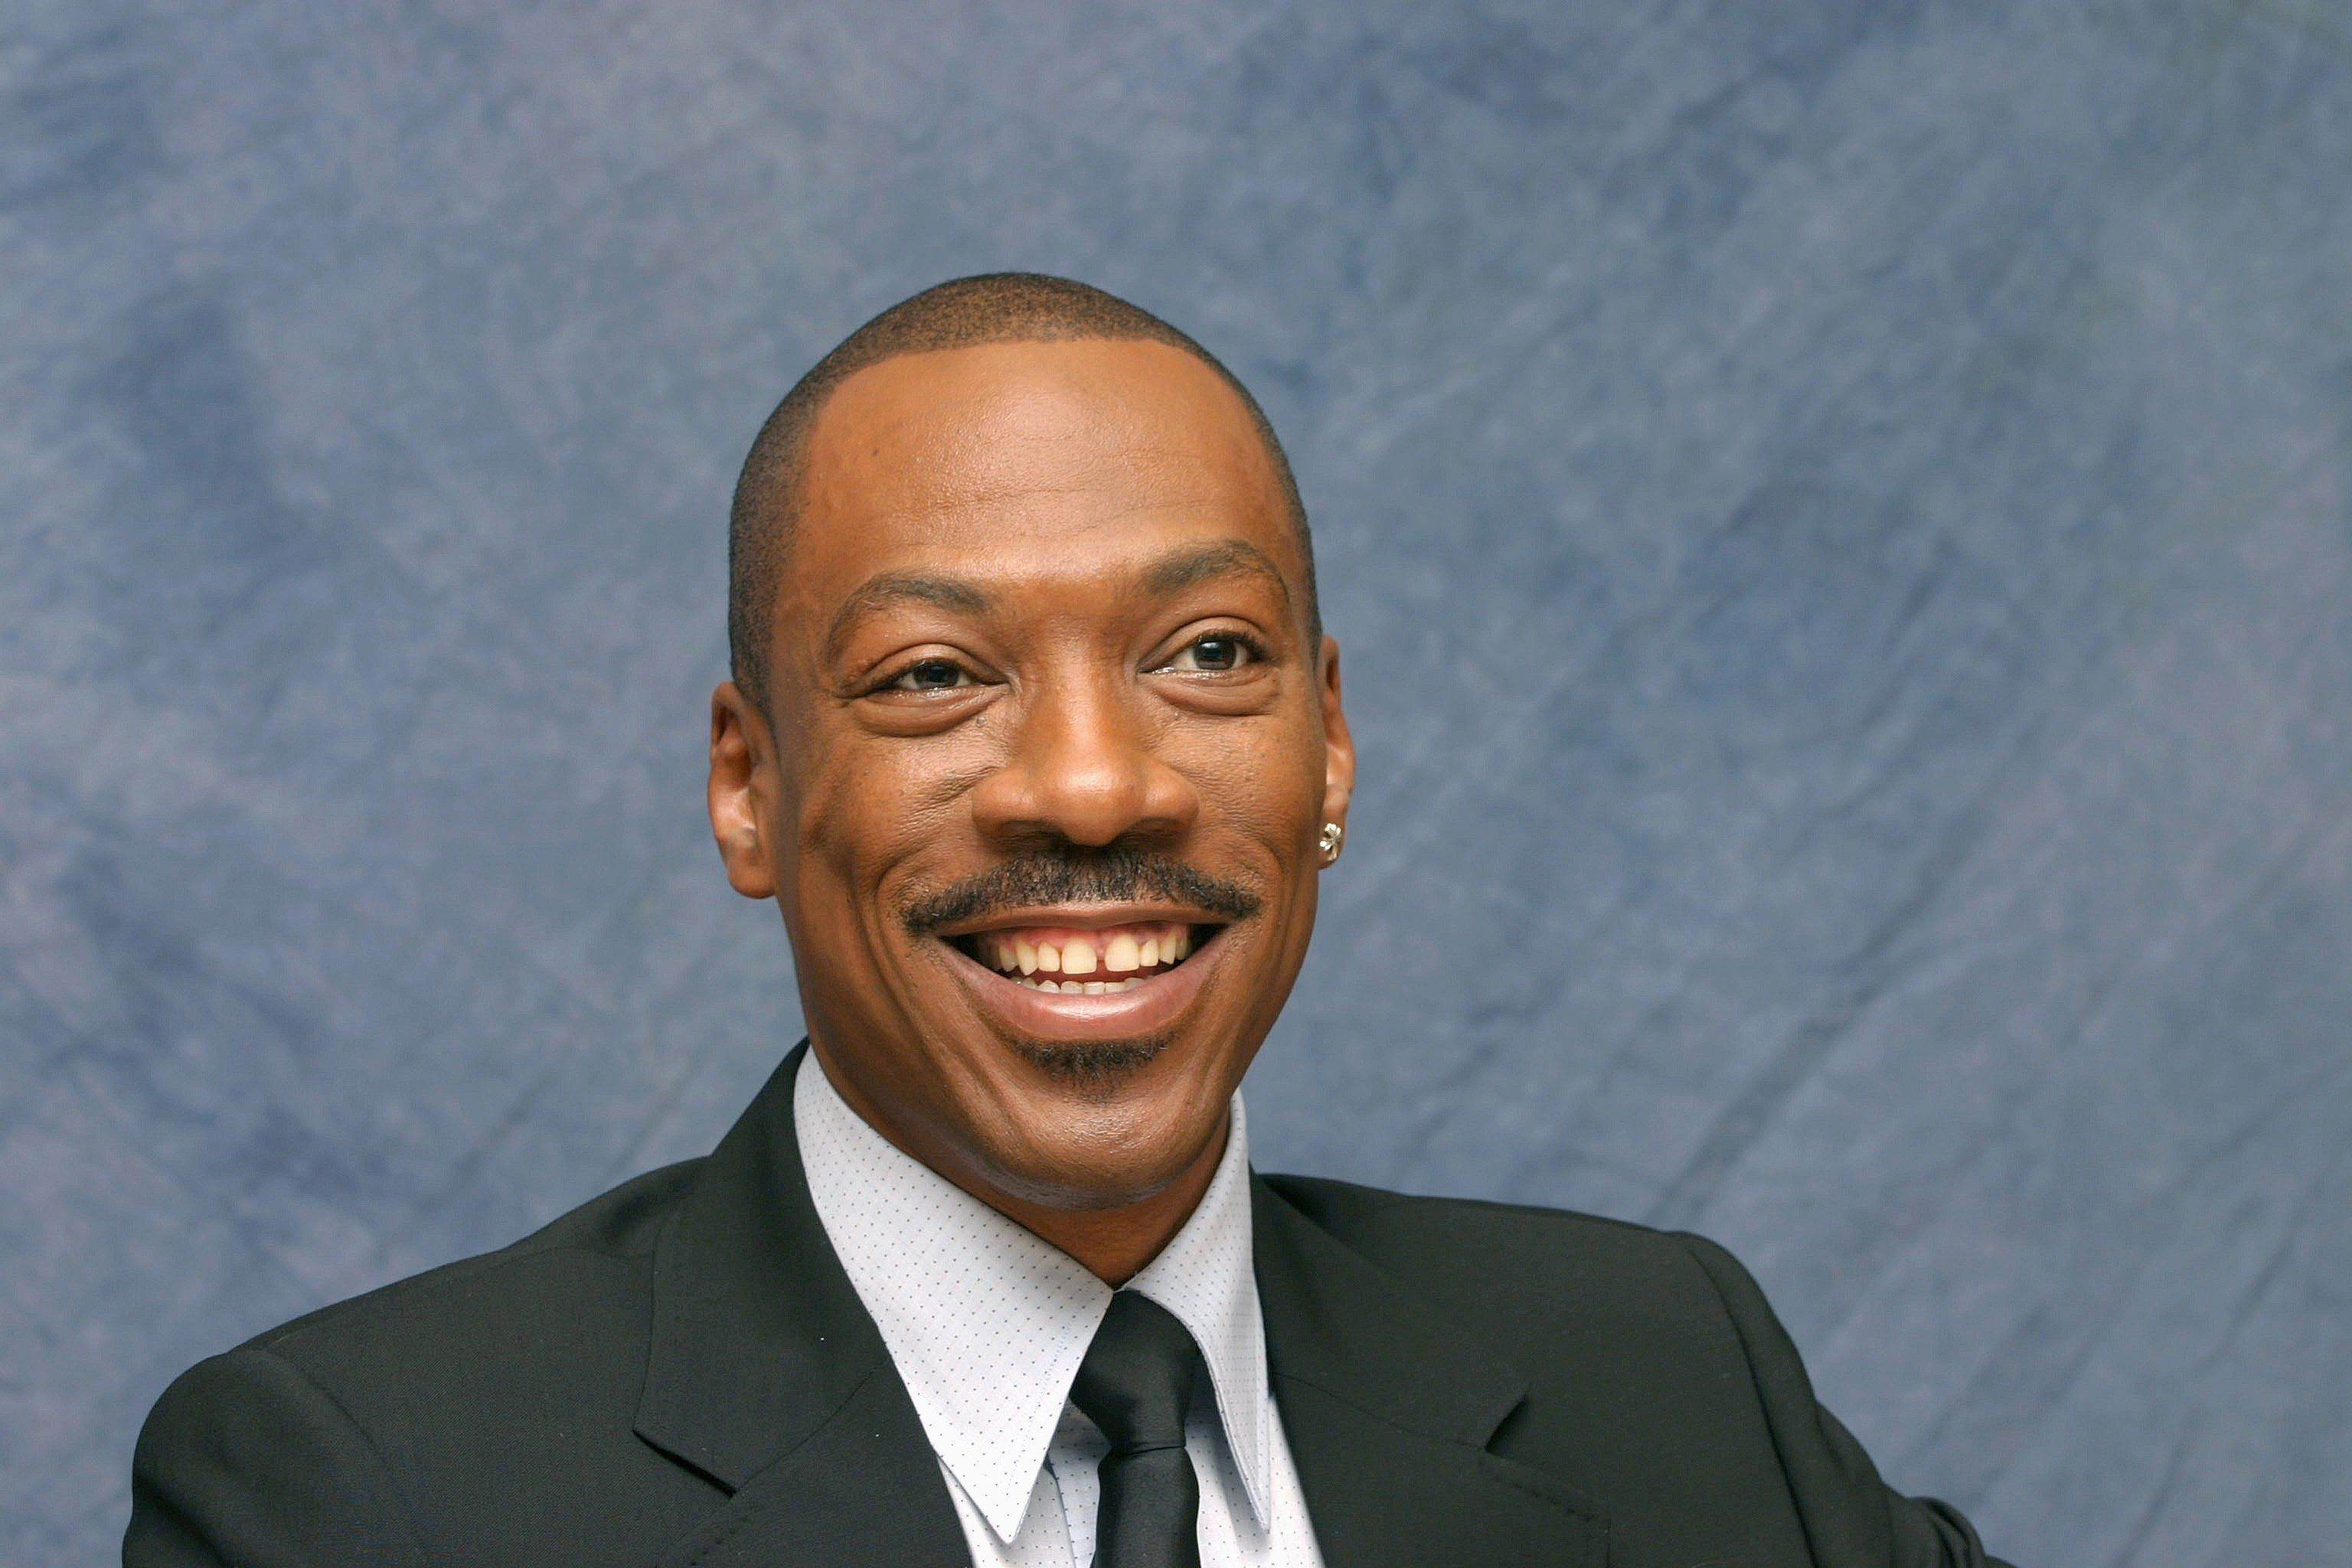 Eddie Murphy at the Beverly Hilton Hotel on November 17, 2006 in Beverly Hills. | Photo: Getty Images